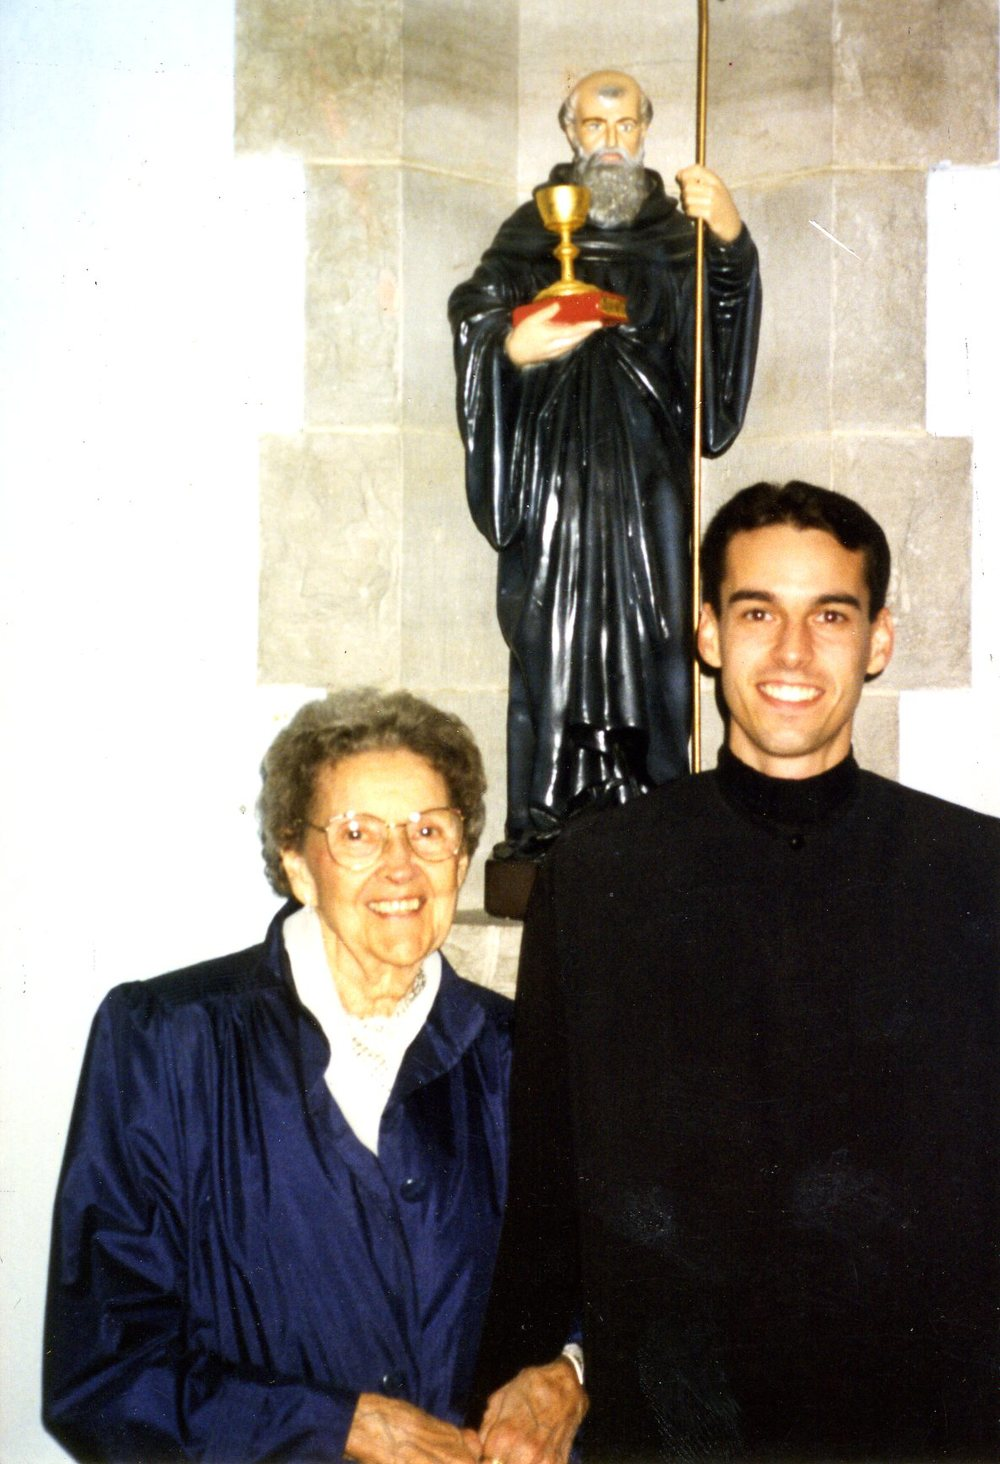 Abbot James entered the novitiate on December 7, 1995.  His family, including his Grandmother Bette Sittenauer (above at left), were on hand to see him receive his habit and  Rule.